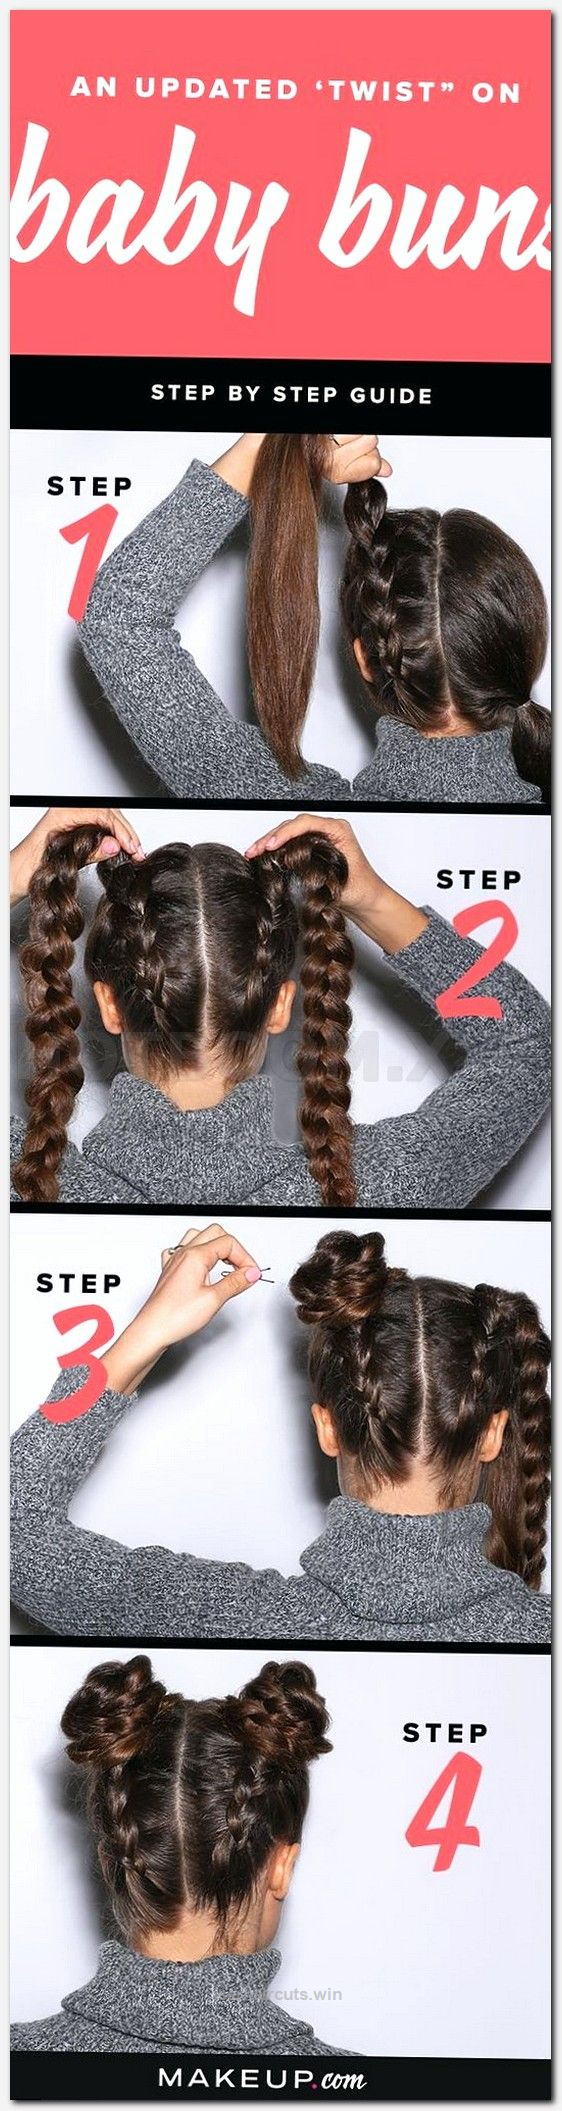 Wedding Hairstyles For How Will I Look With Different Hairstyles